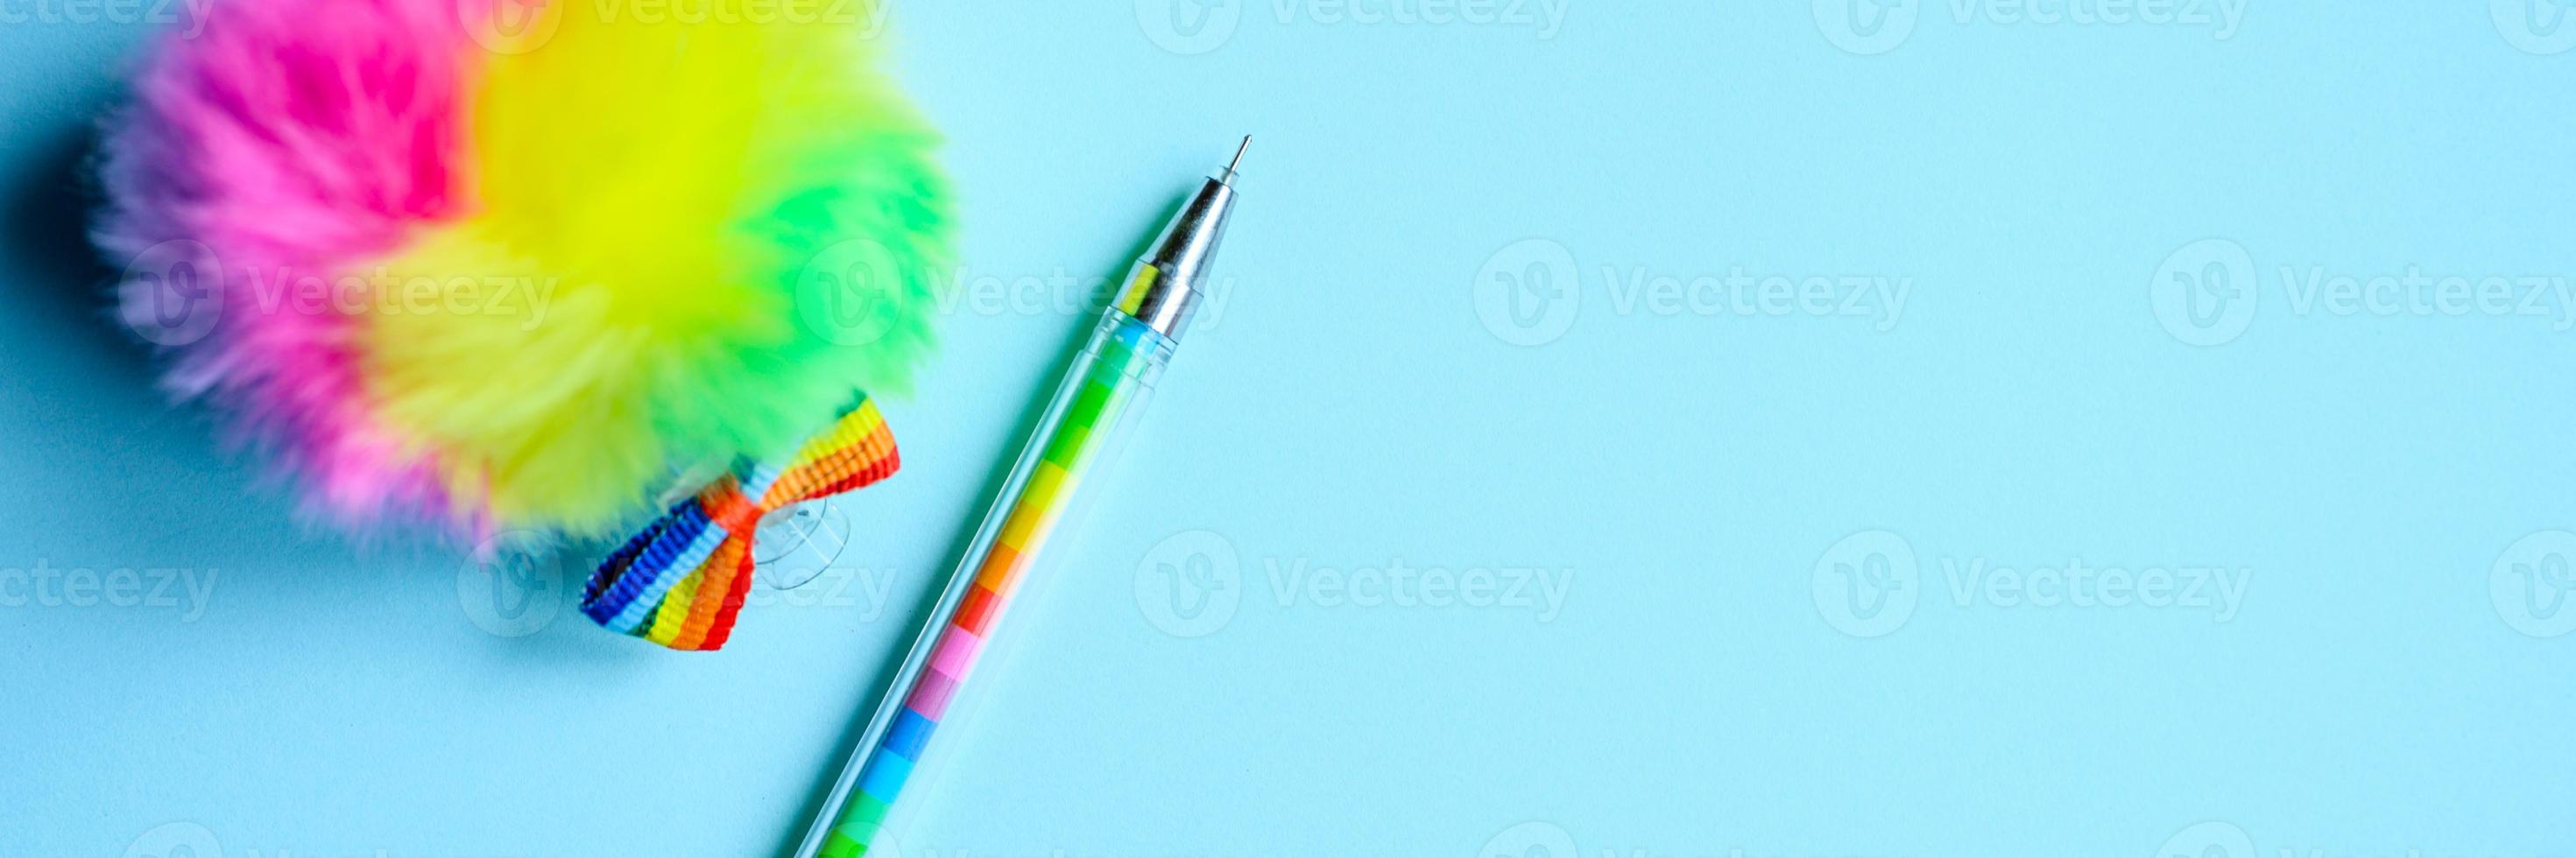 Multi-colored pen on blue background photo